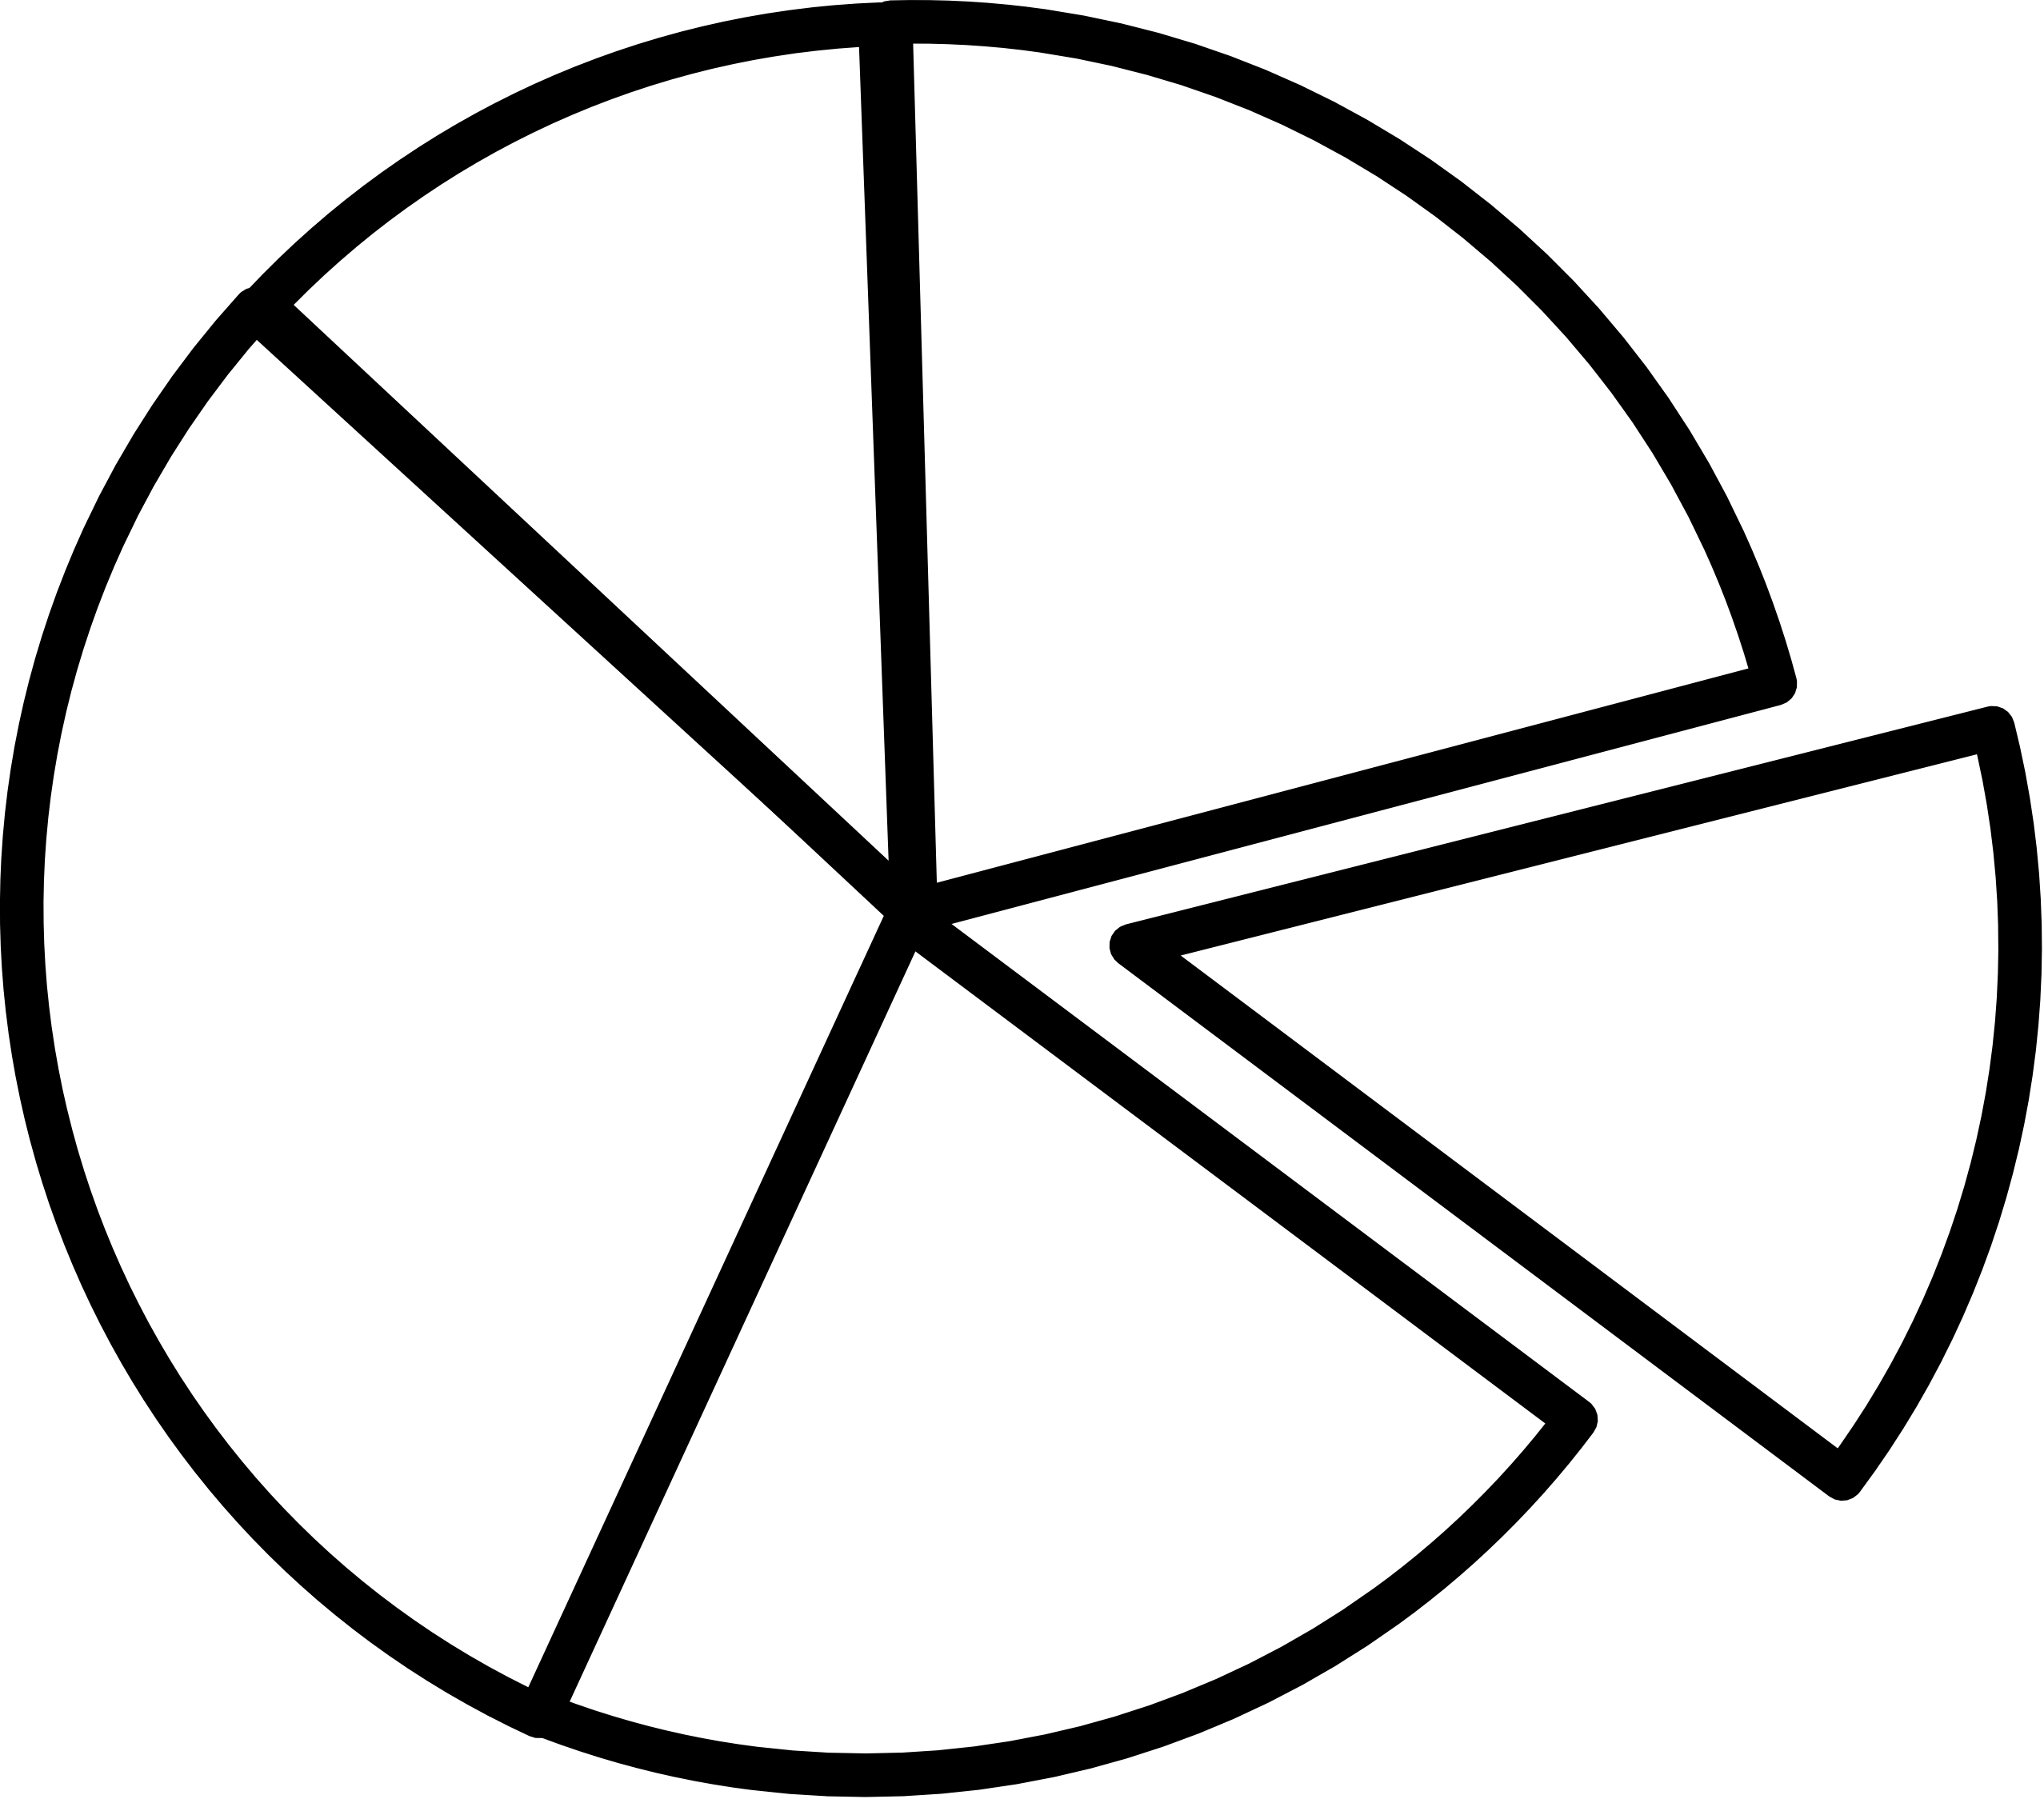 collection of black. Fraction clipart pie chart